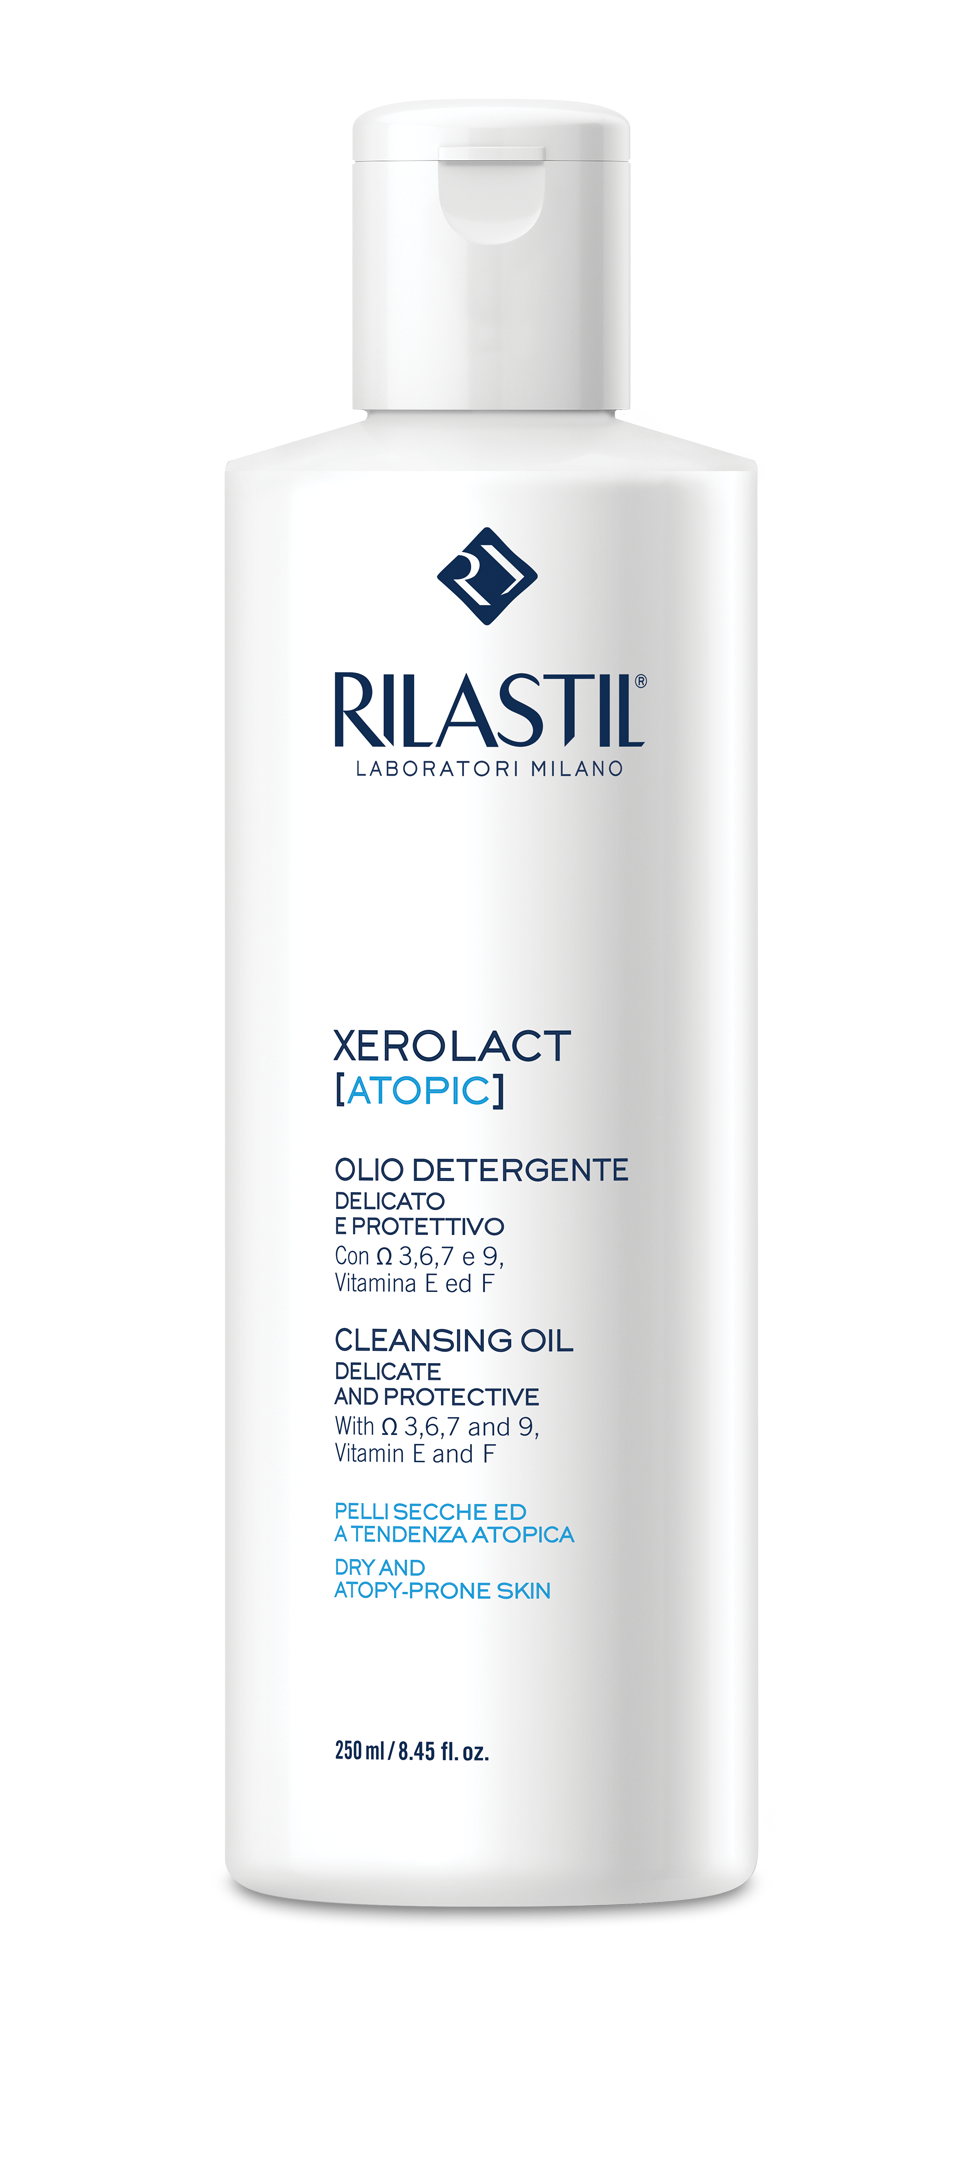 Rilastil Xerolact Atopic Cleansing Oil For the dry, very dry and atopy-prone skin of babies, children and adults, 250ml